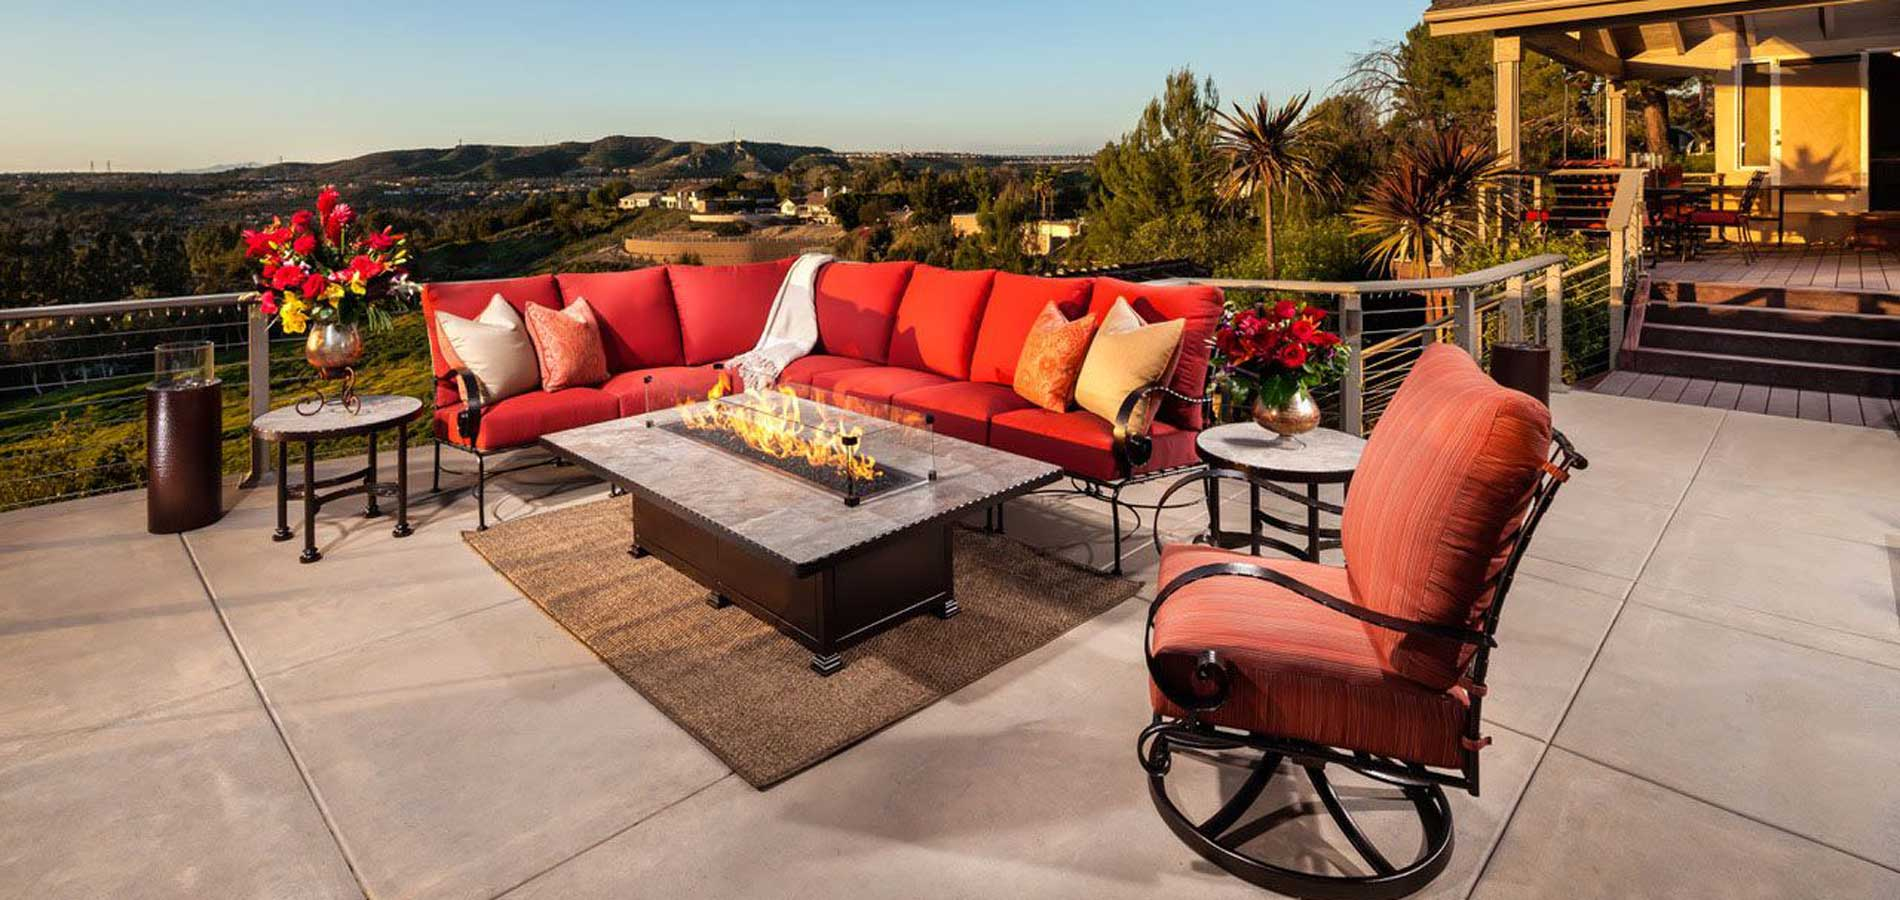 Daylight Home And Patio Furniture San Luis Obispo Ca - Outdoor Furniture Clearance Outlet Penrith